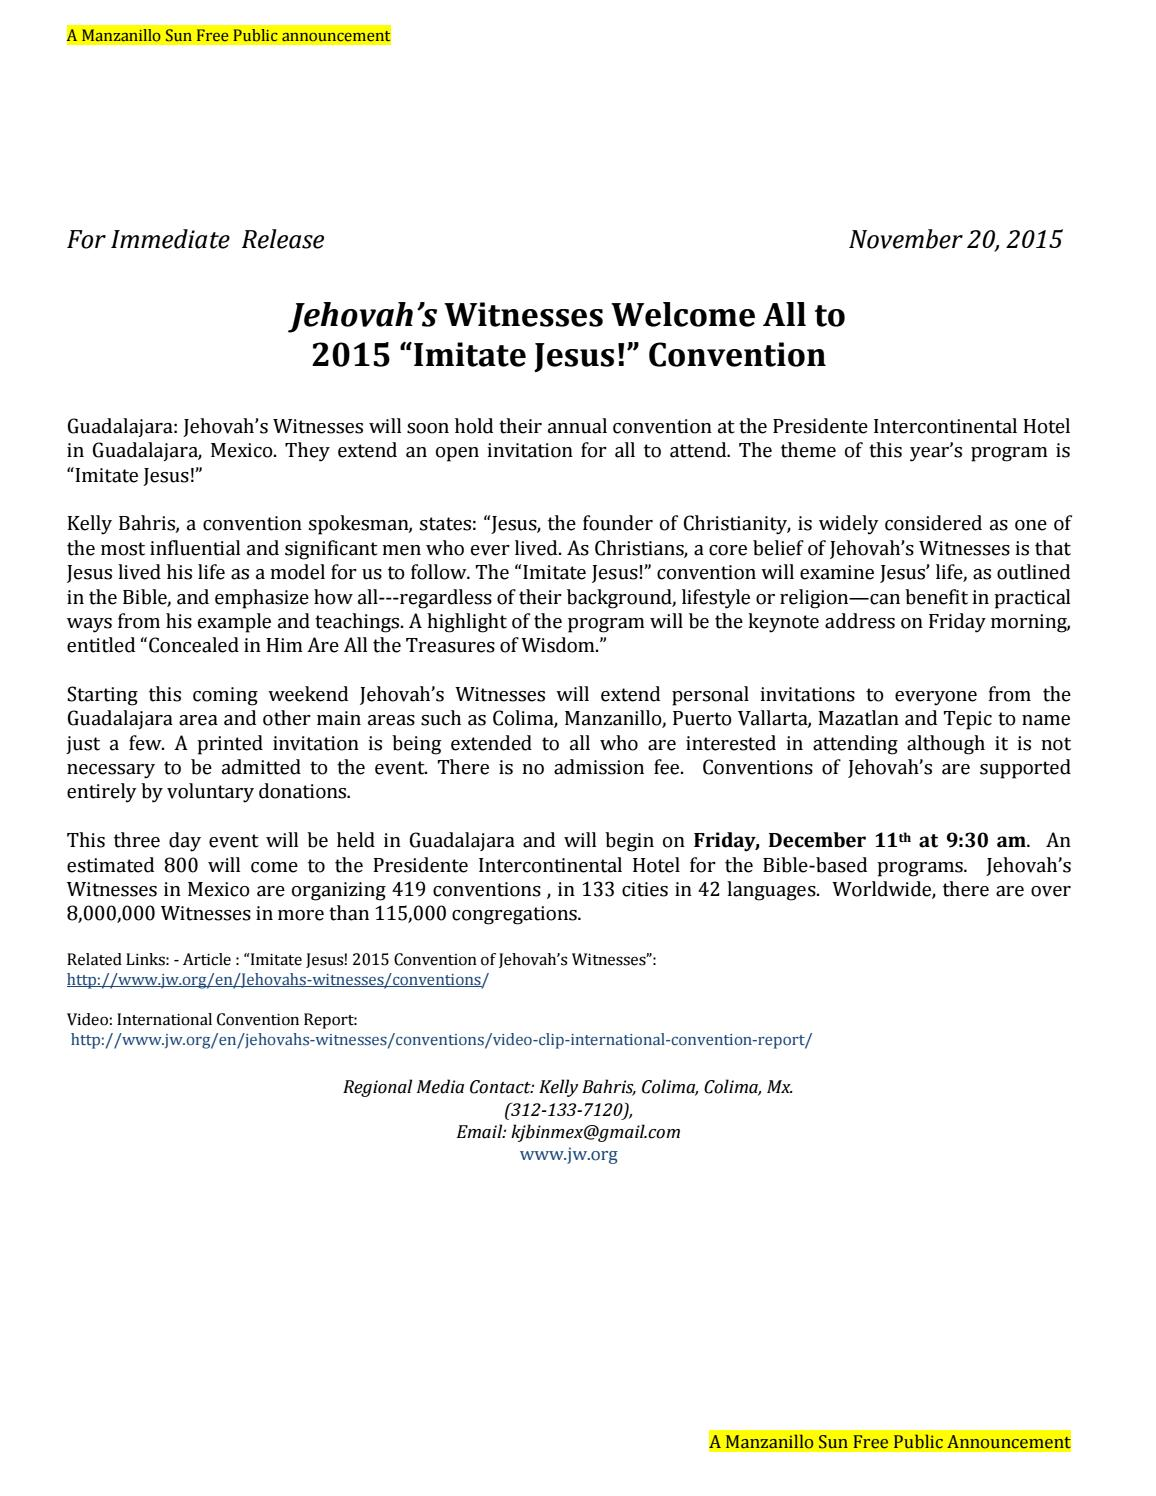 Jw Org Convention Invitation - Letter BestKitchenView CO